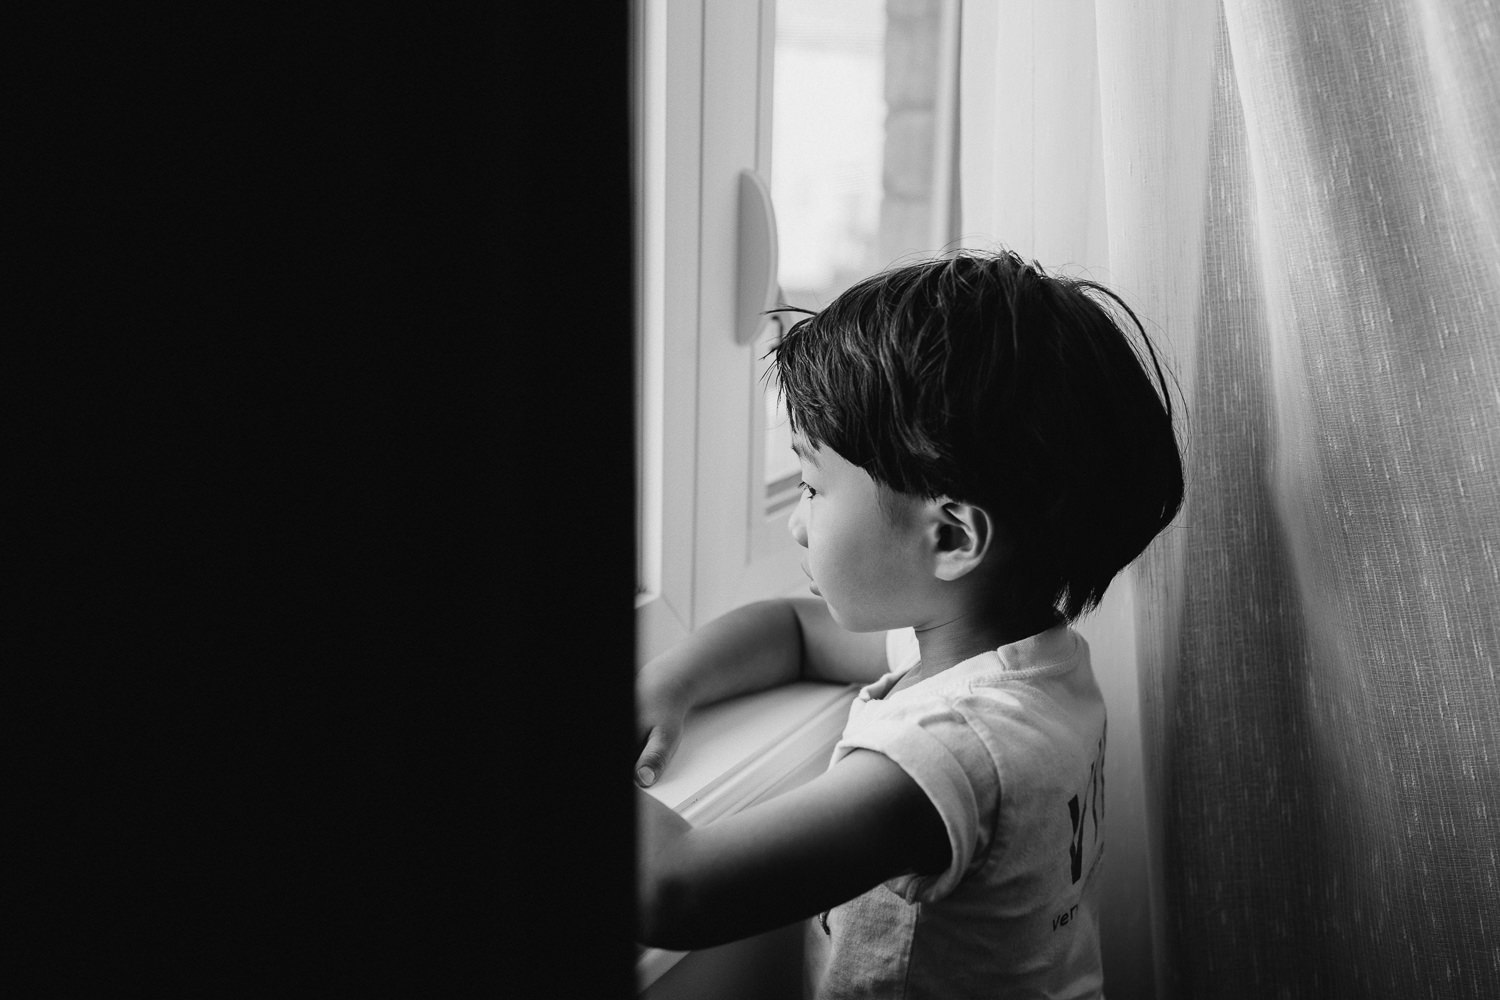 3 year old boy with dark hair and eyes wearing light t-shirt standing at window looking outside - GTA In-Home Photos